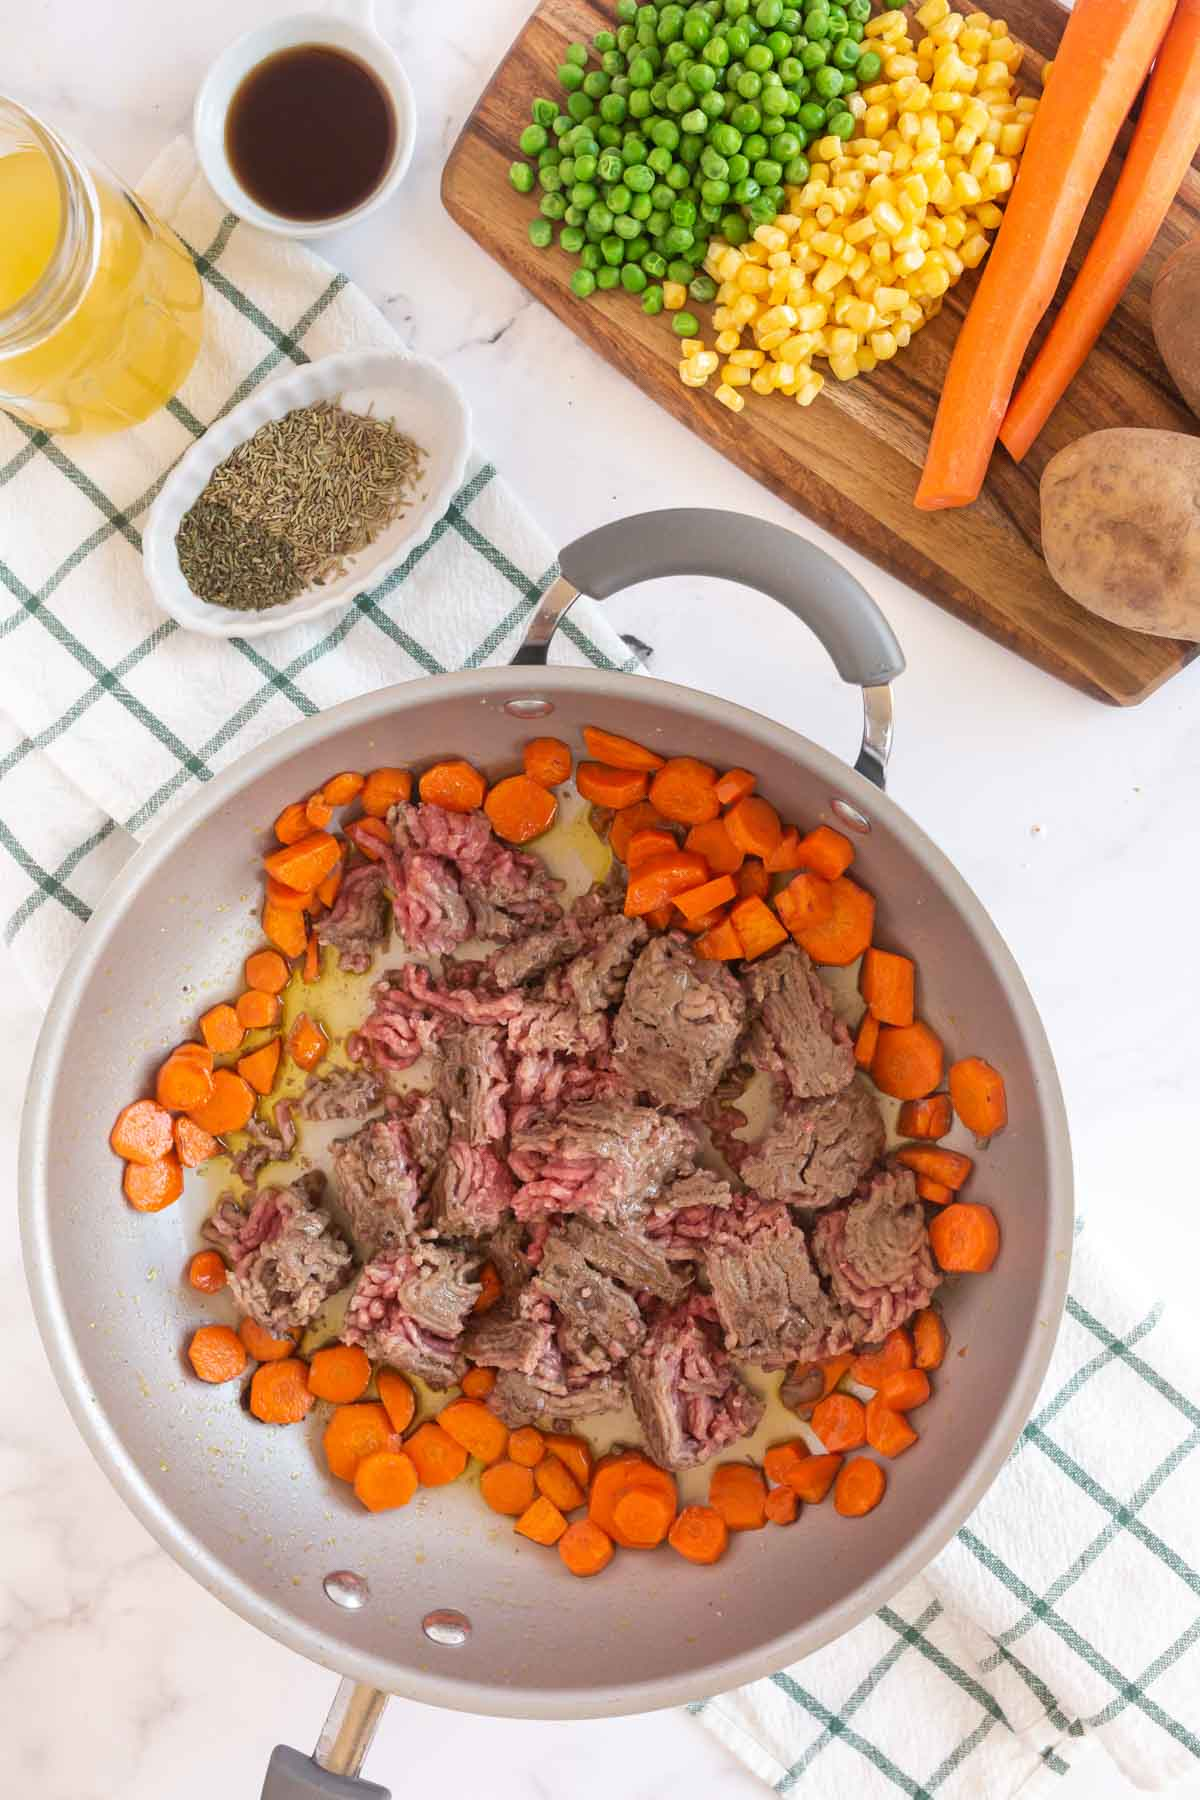 Metal saute pan with carrots and ground beef